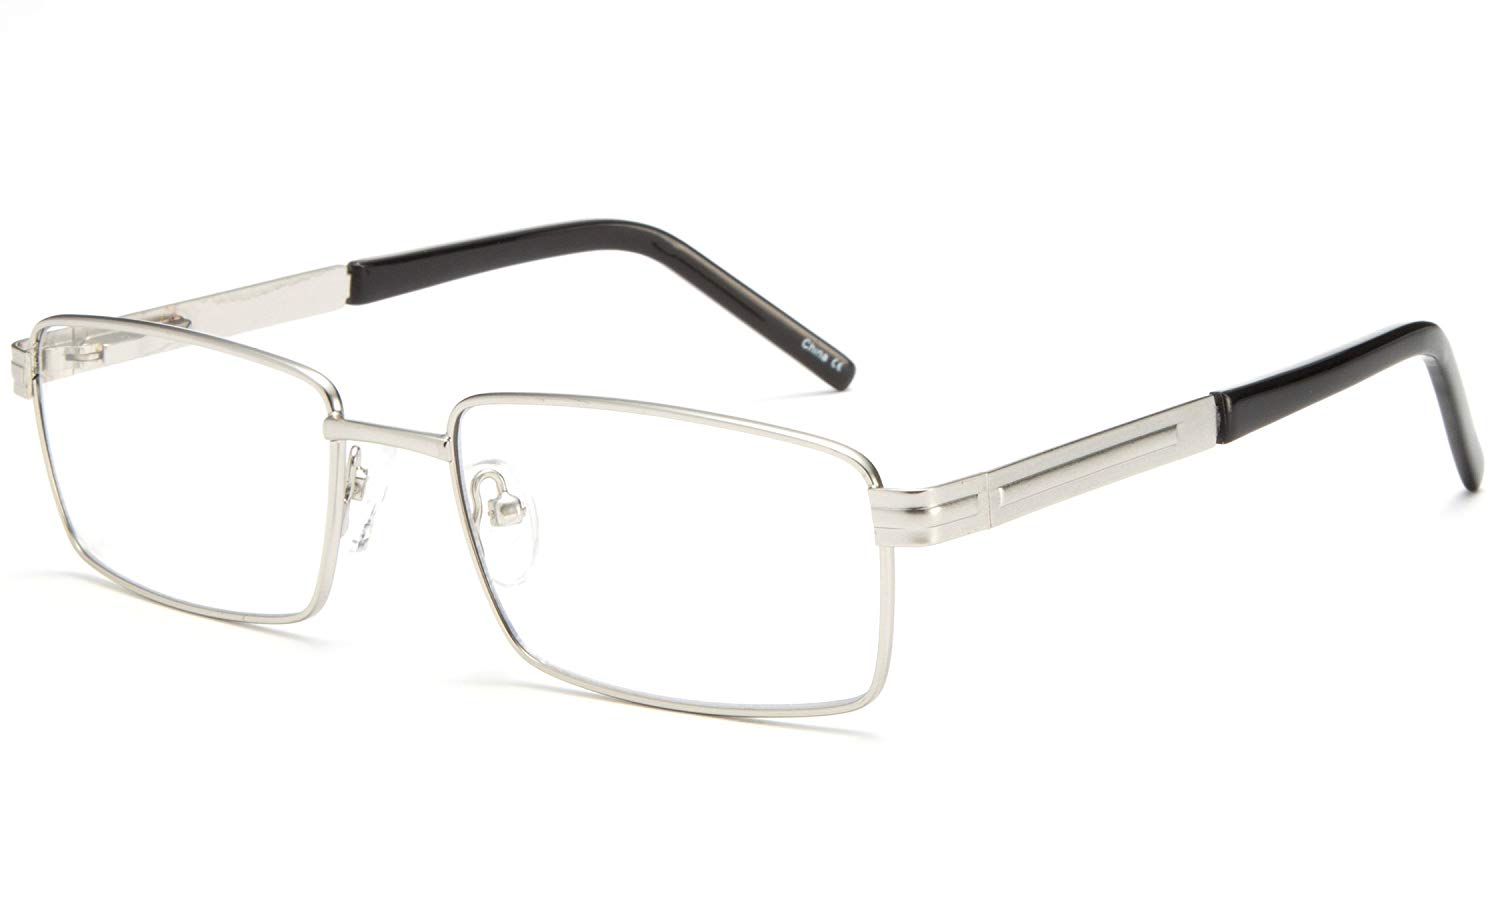 Newbee Fashion - Light Weight Metal Frame Squared Durable Reading Glasses with Spring Temple